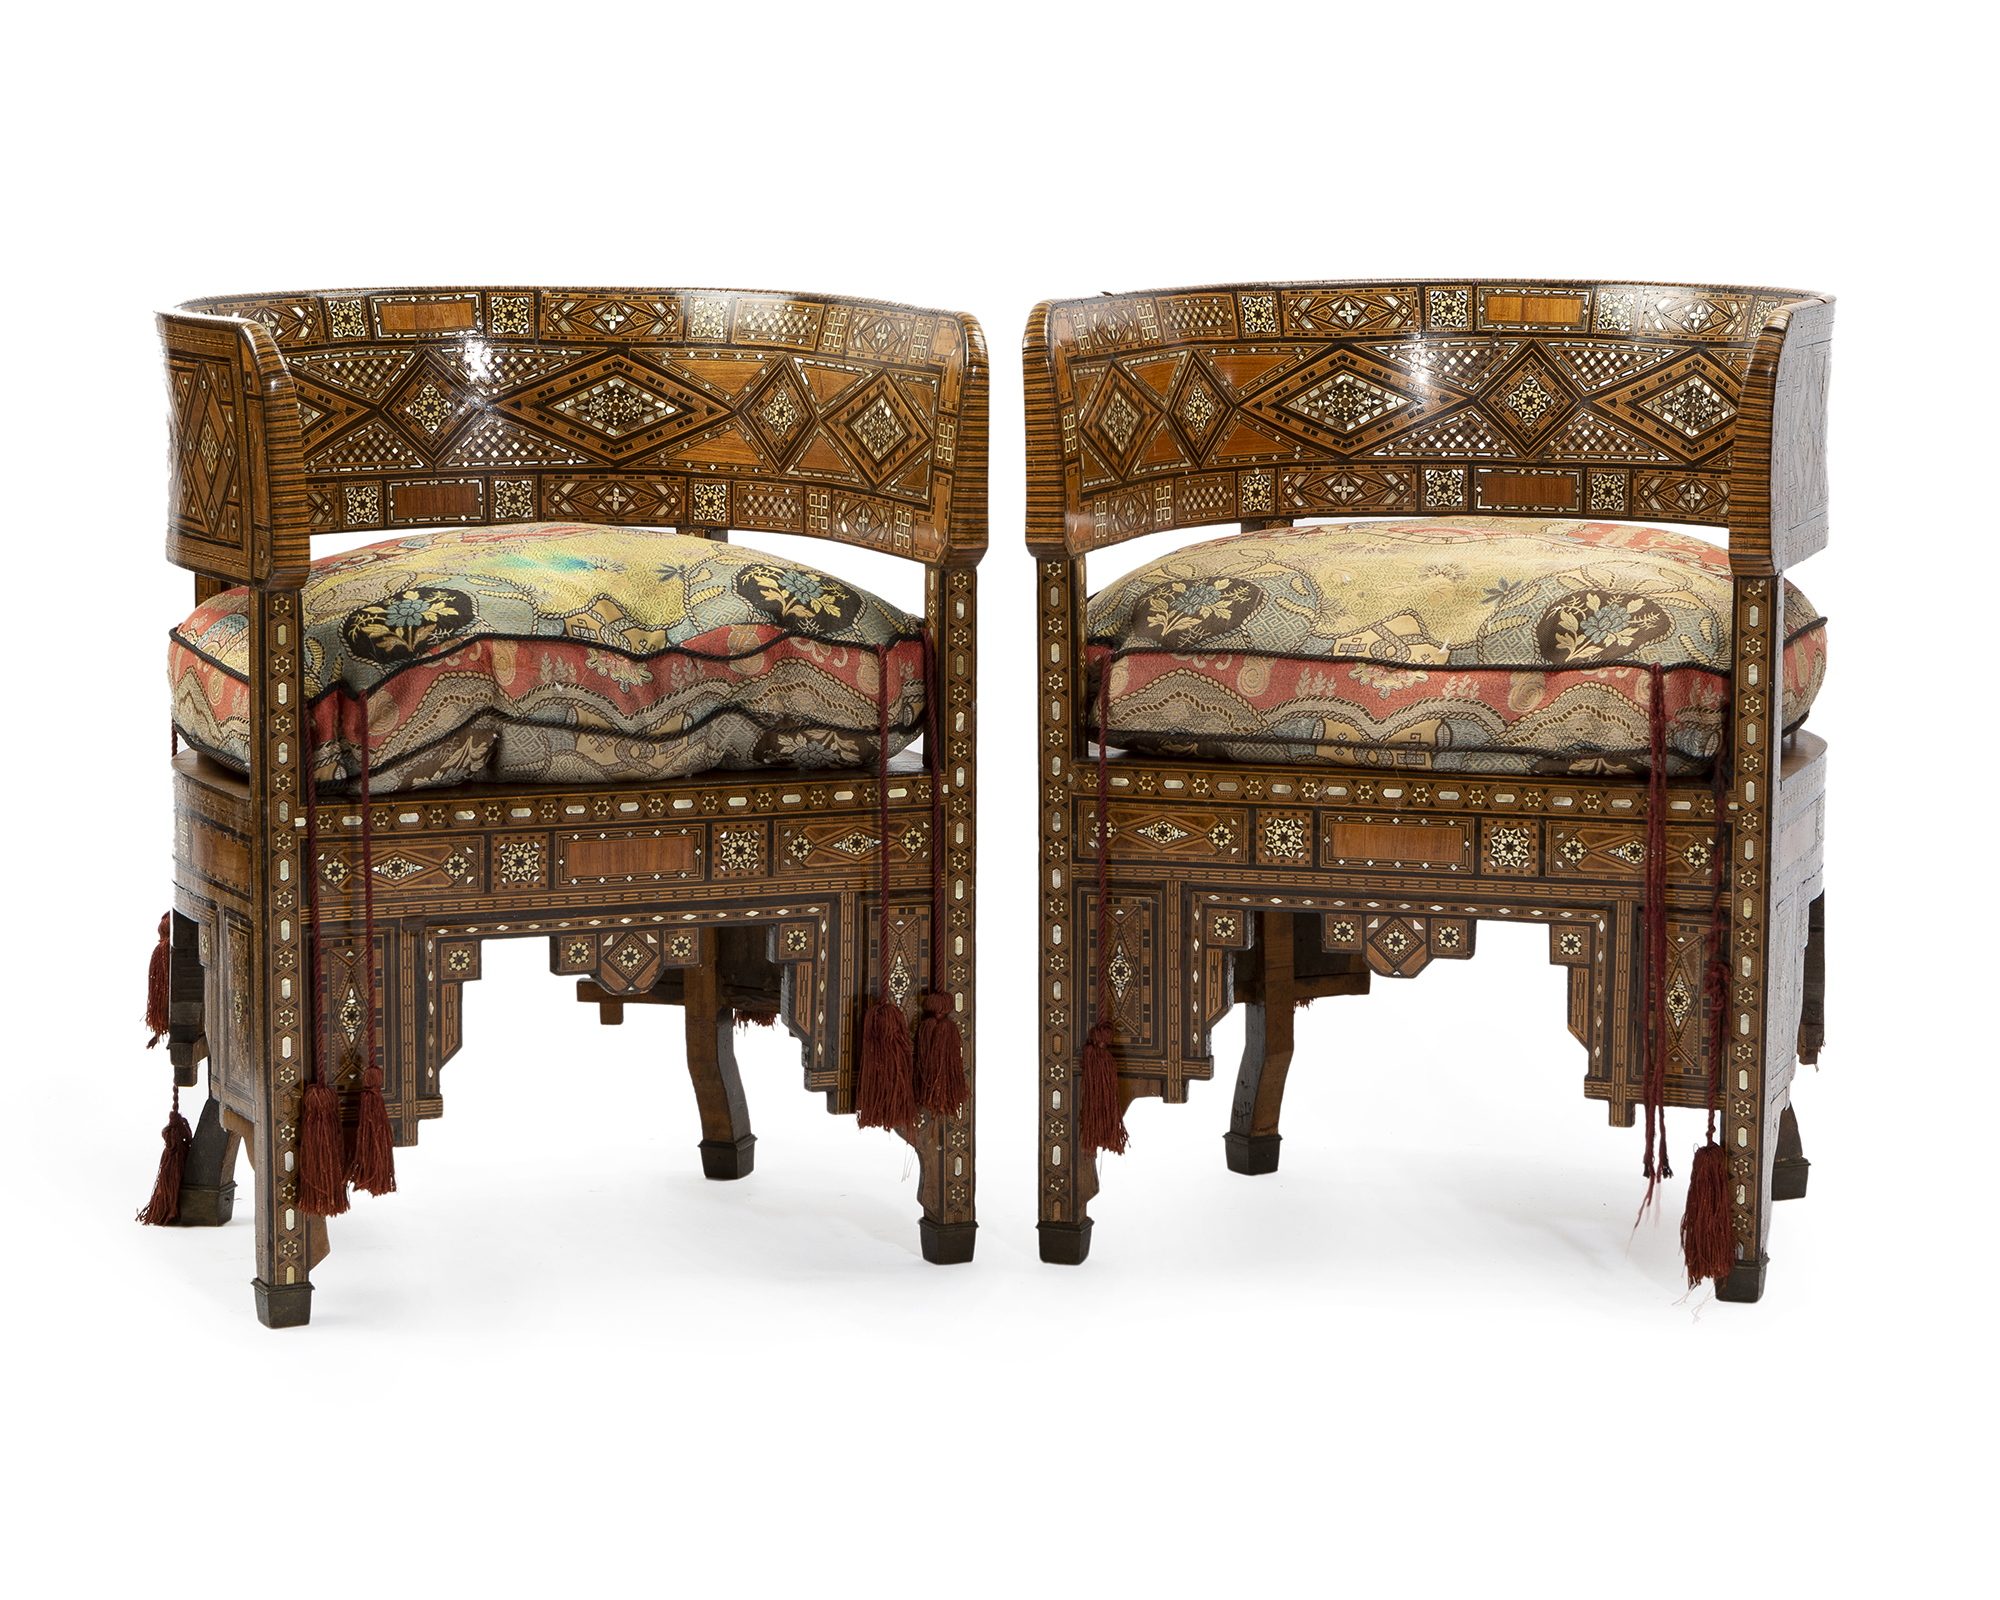 Moran's first Traditional Collector auction of the year features fine furniture, décor, and artwork from the world's most beloved artisans